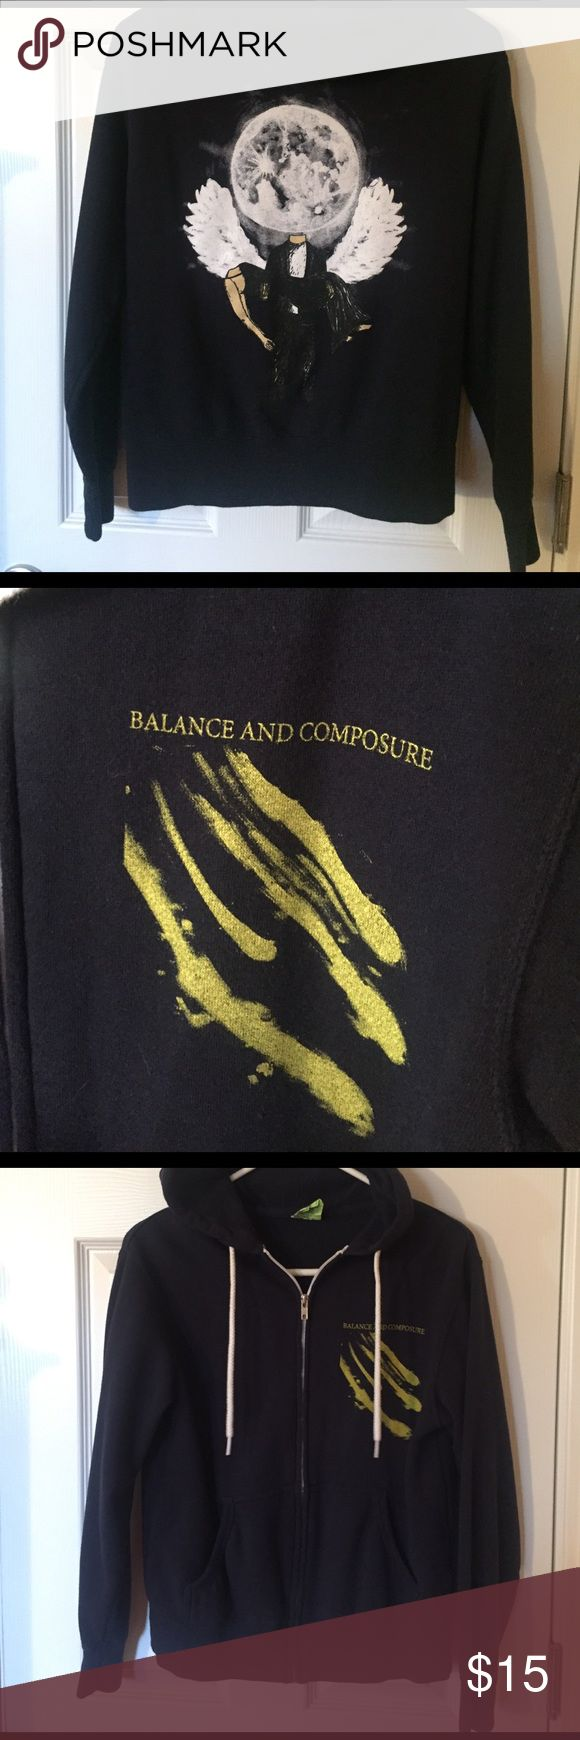 BALANCE AND COMPOSURE BAND ZIP UP HOODIE This hoodie is in like new condition worn only a couple of times. Size small. Zips up and has graphic on the back and front. Great for all music lovers and especially pop punk lovers. Shirts Sweatshirts & Hoodies